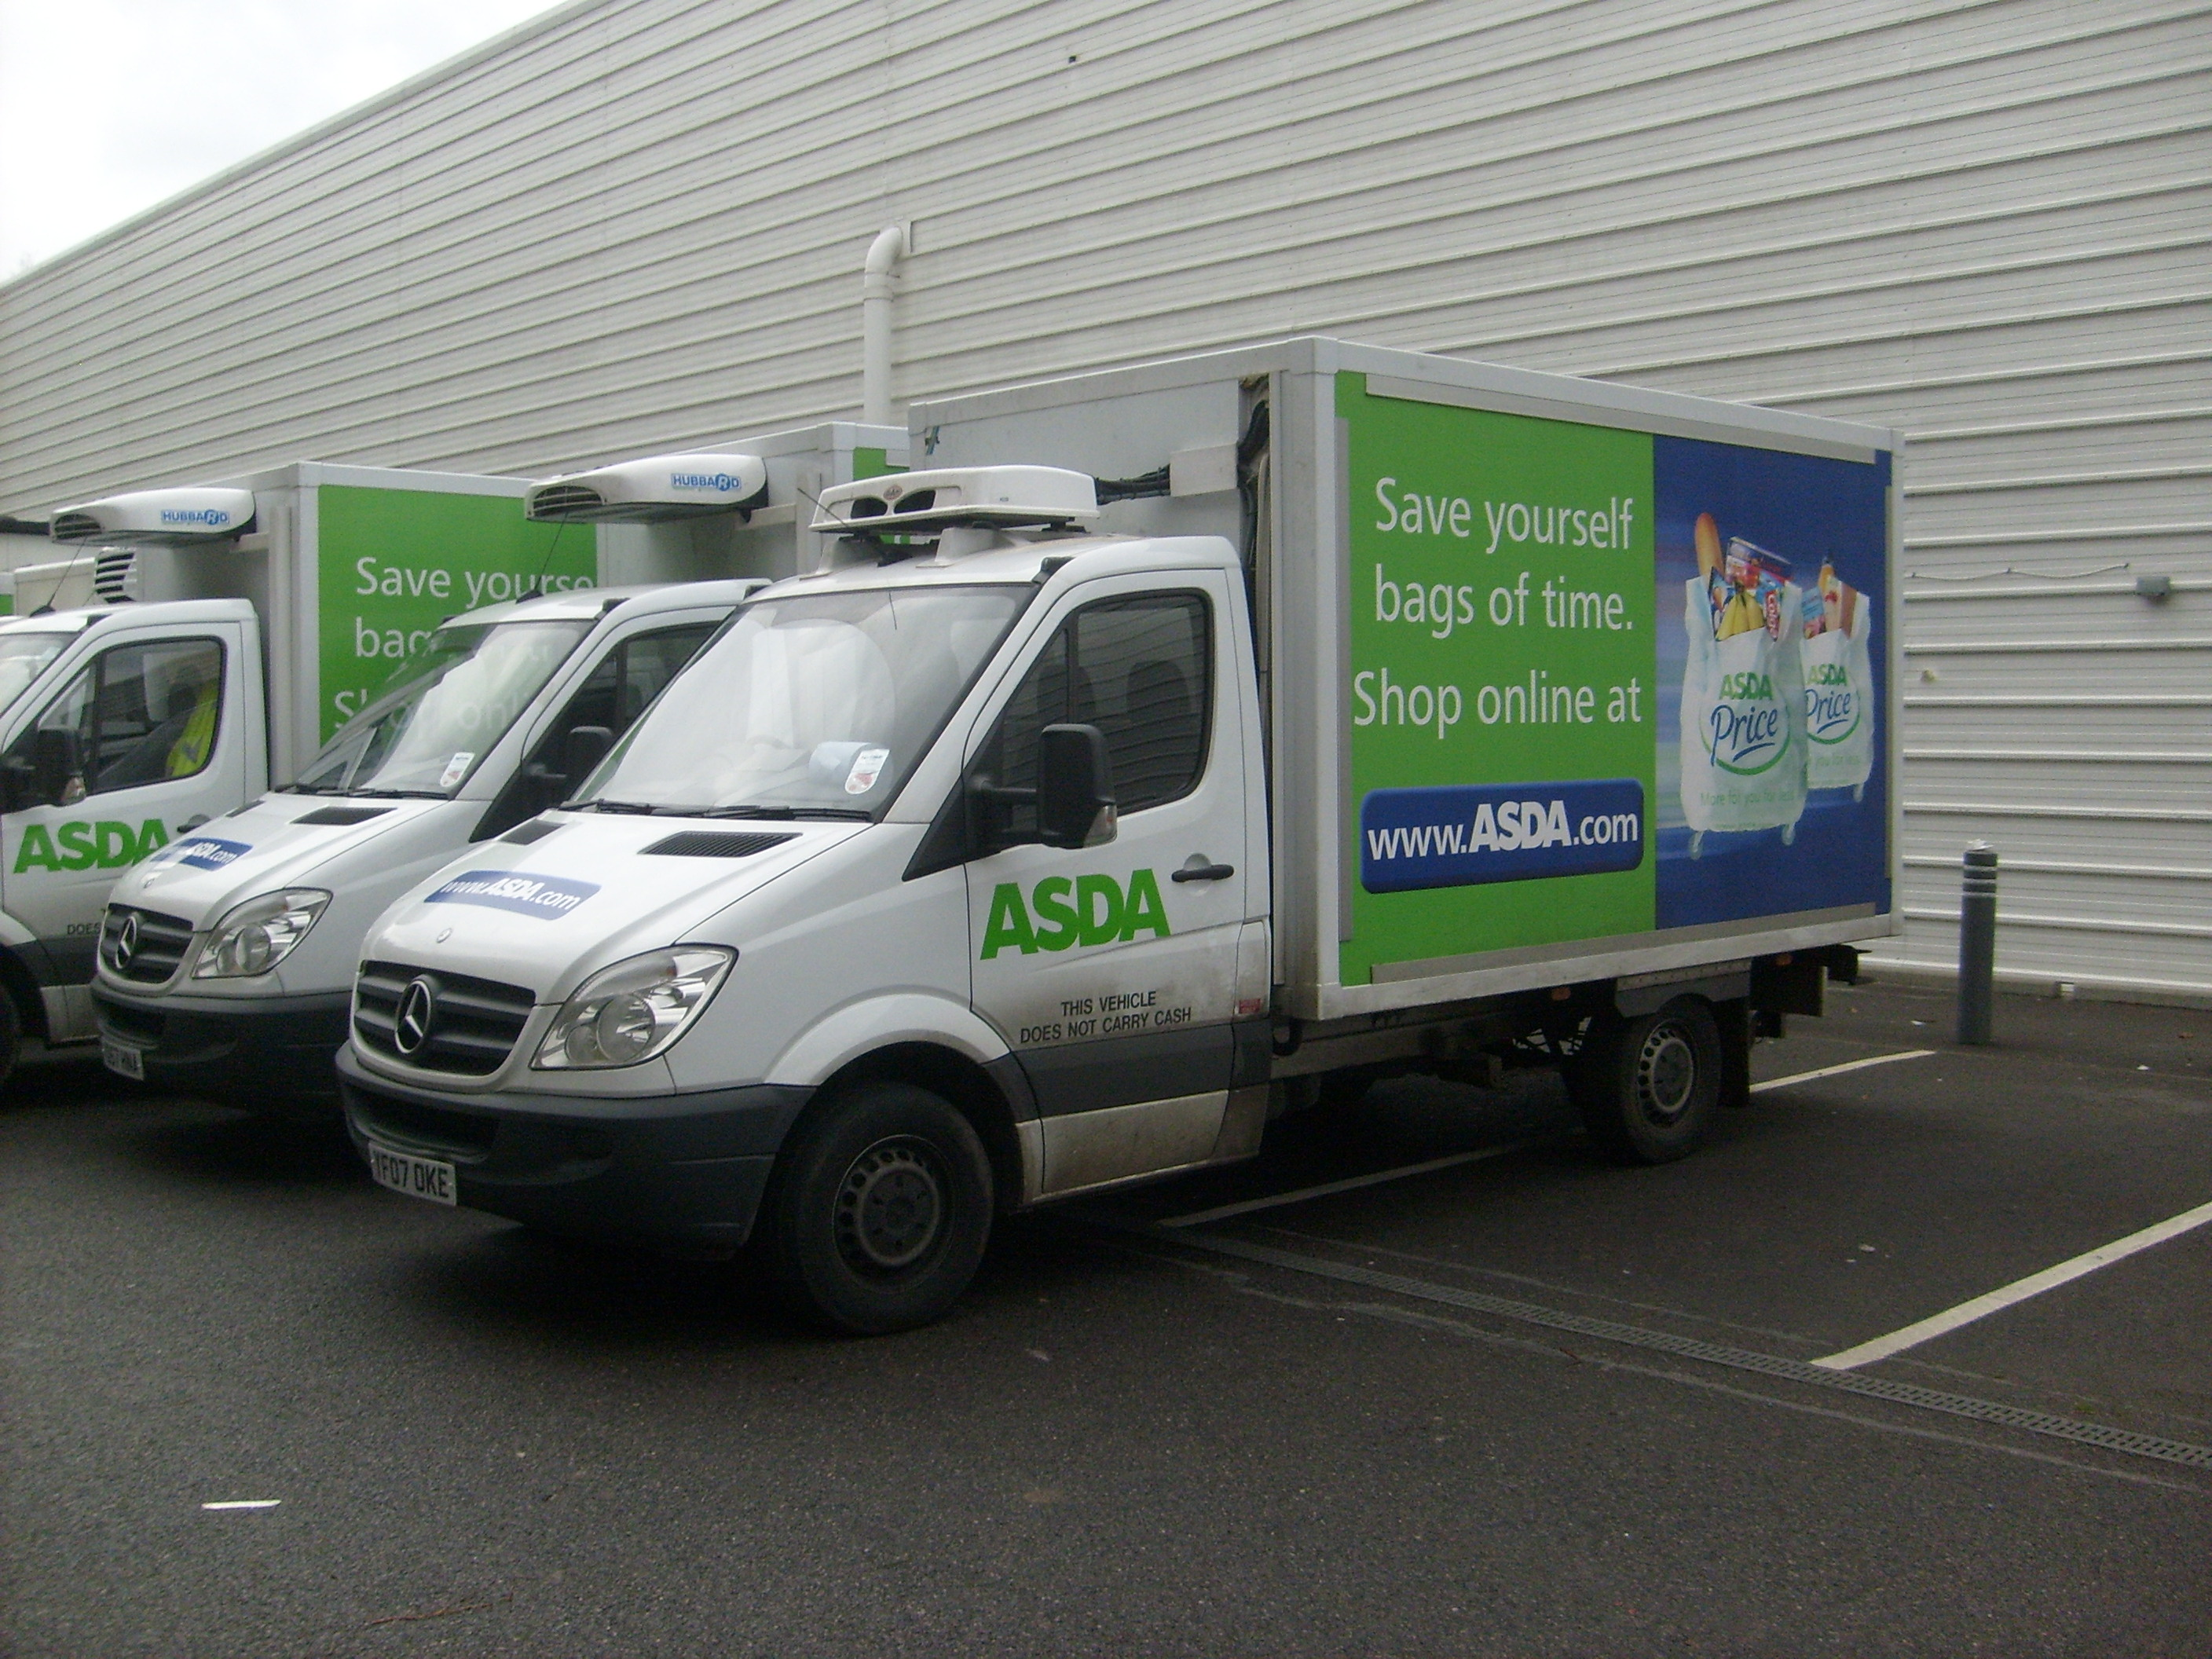 Asda On Line Shopping For Shoes